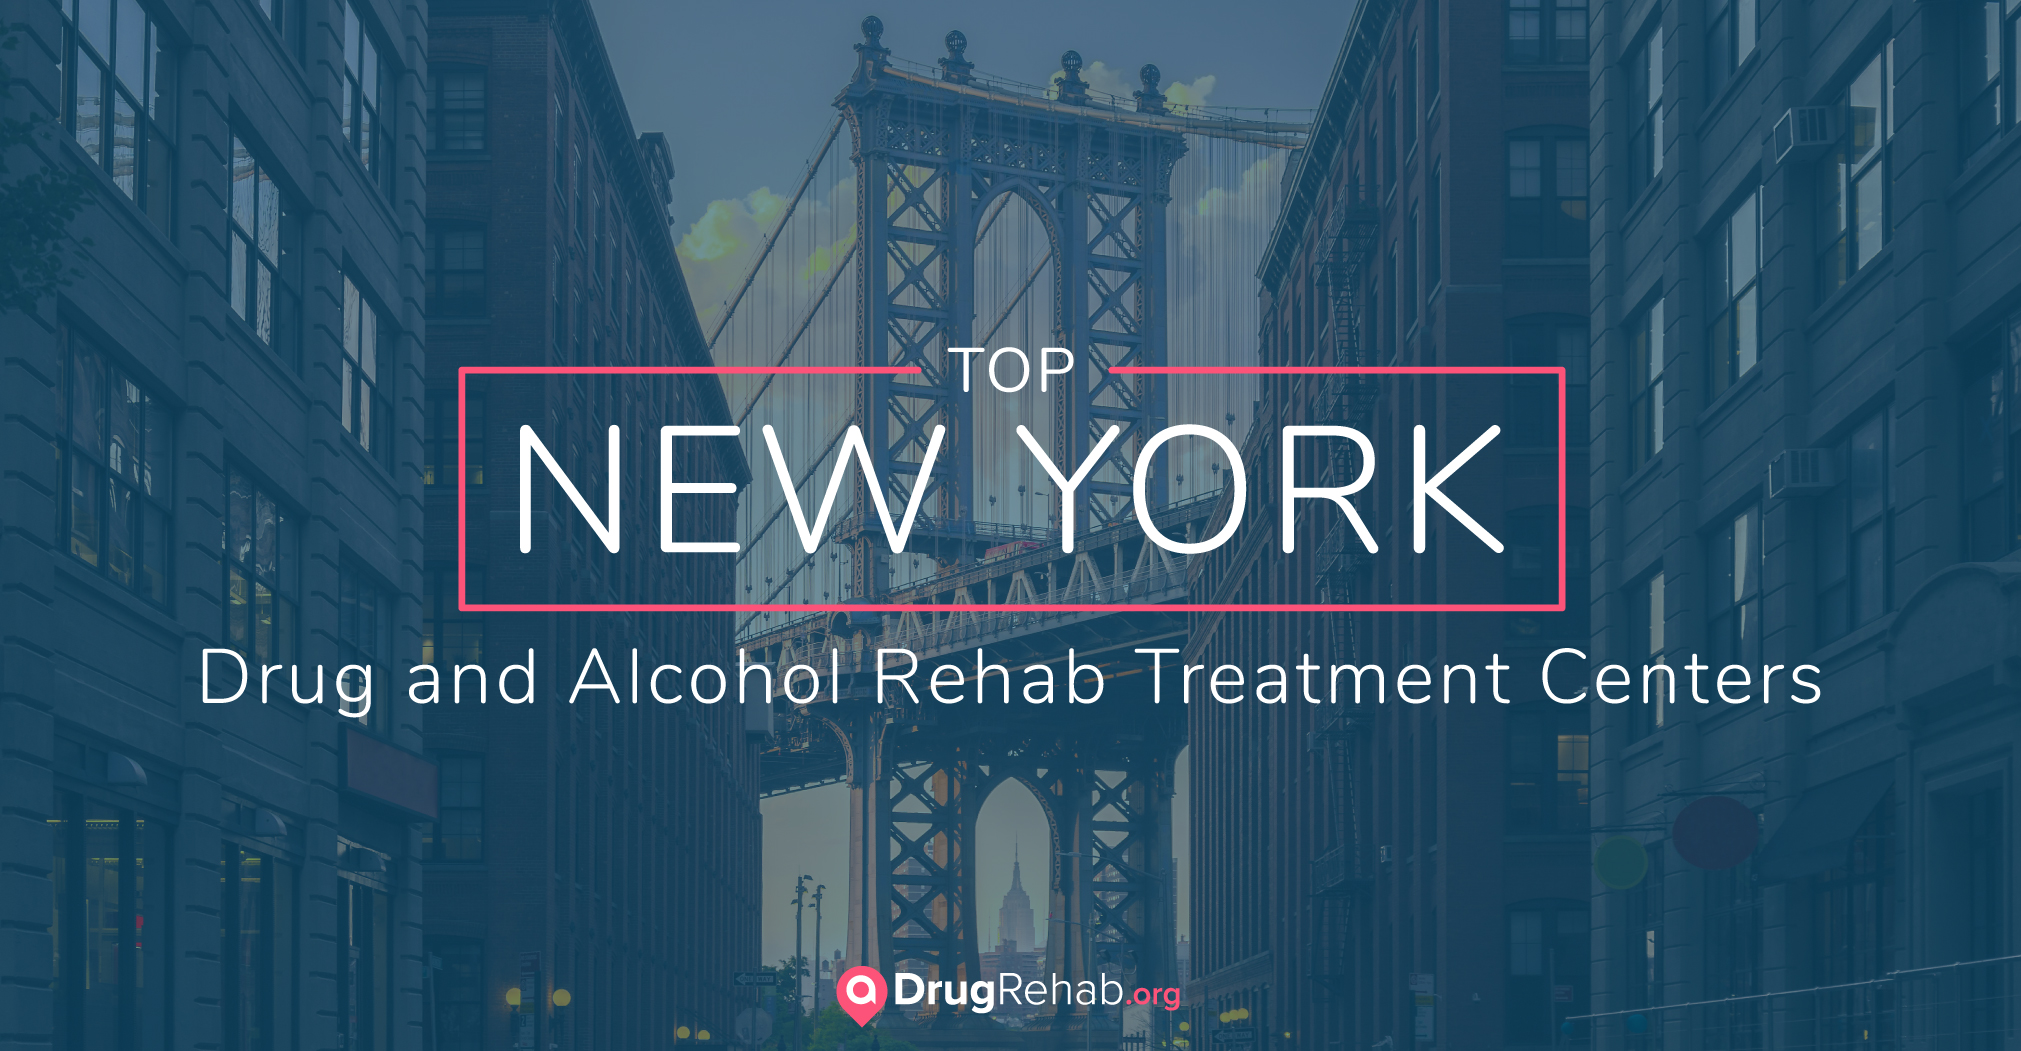 New York Drug and Alcohol Rehab Treatment